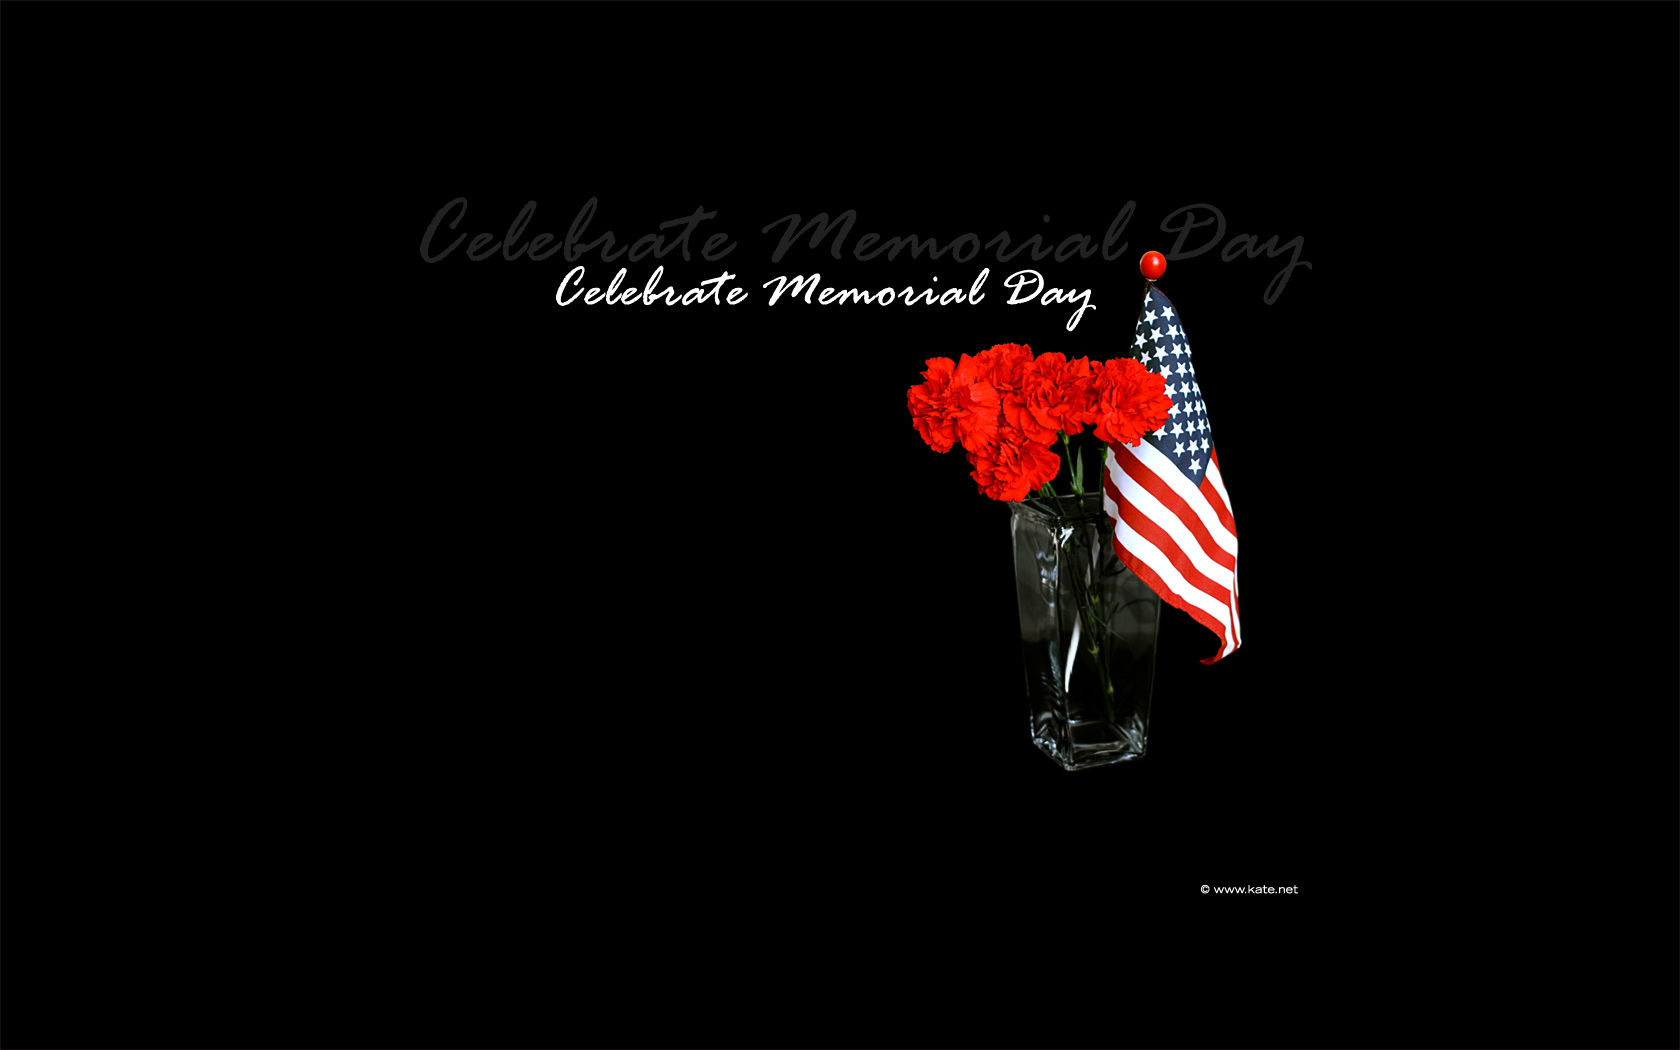 Memorial Day Wallpapers by Kate.net